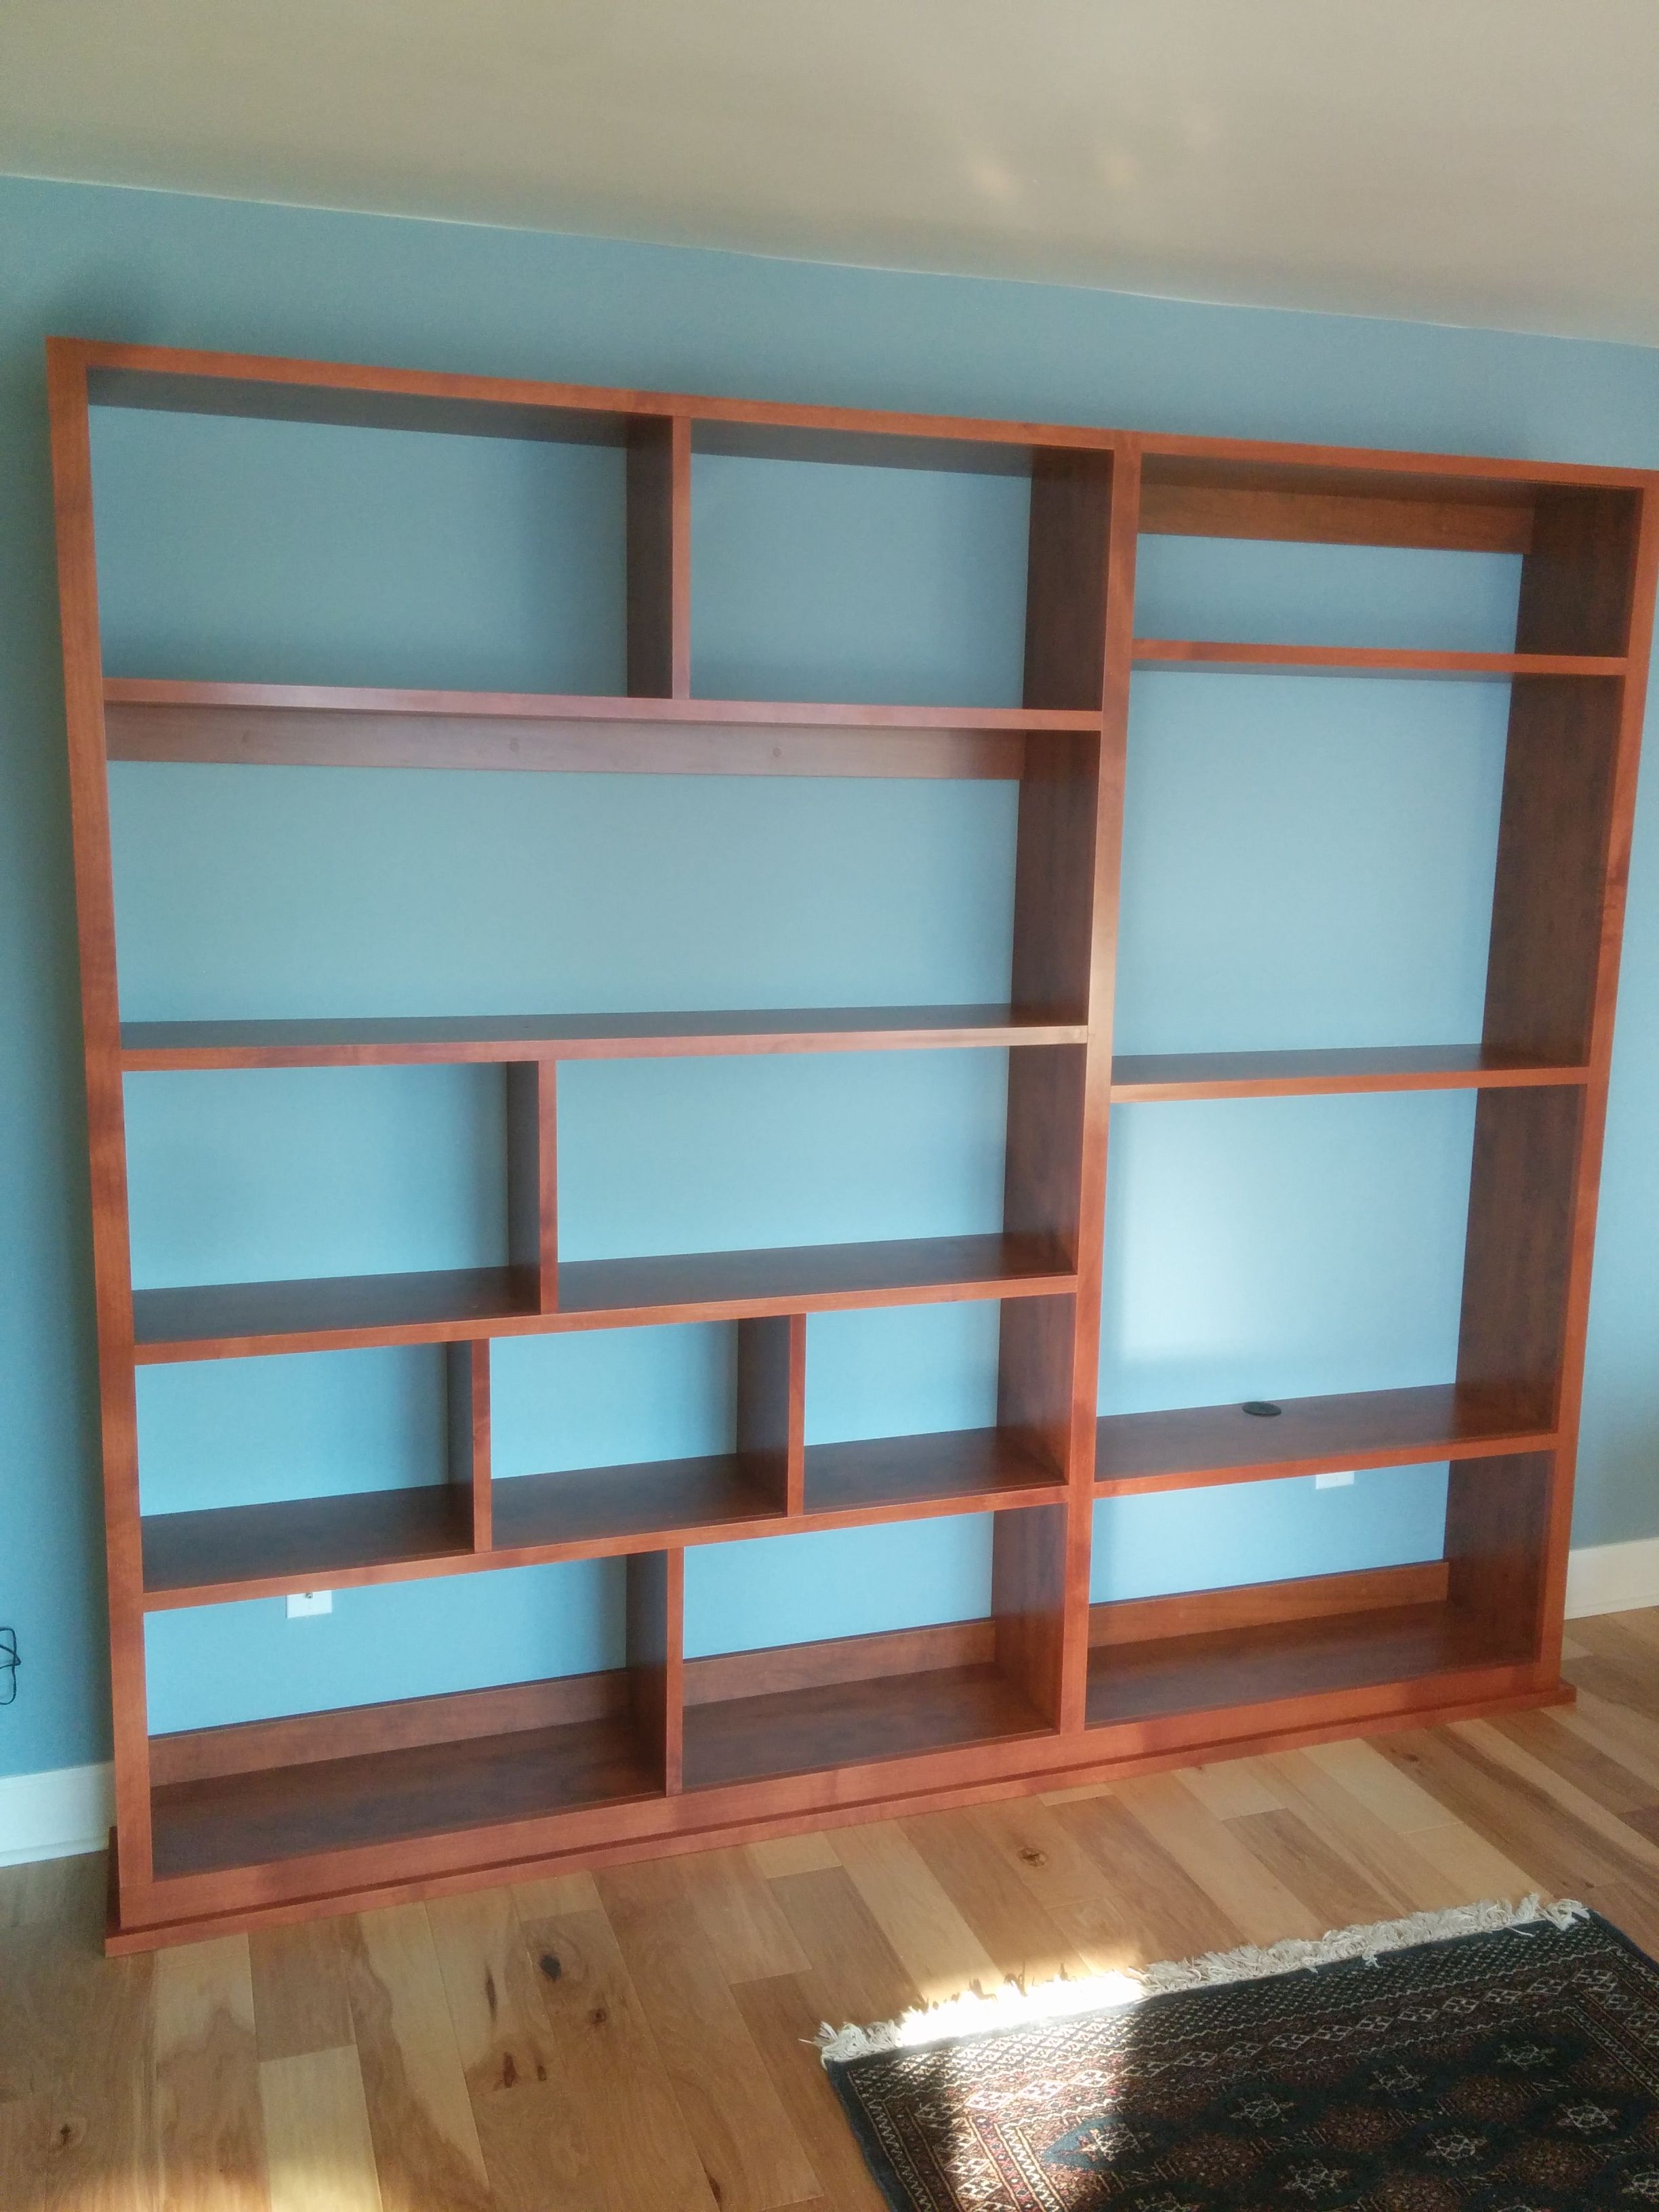 Offset Shelves For A Bookshelf Display And Tv Stand Trimmed Out Nicely With Cherry Wood Trim Shelves Bookshelves Bookshelves Built In